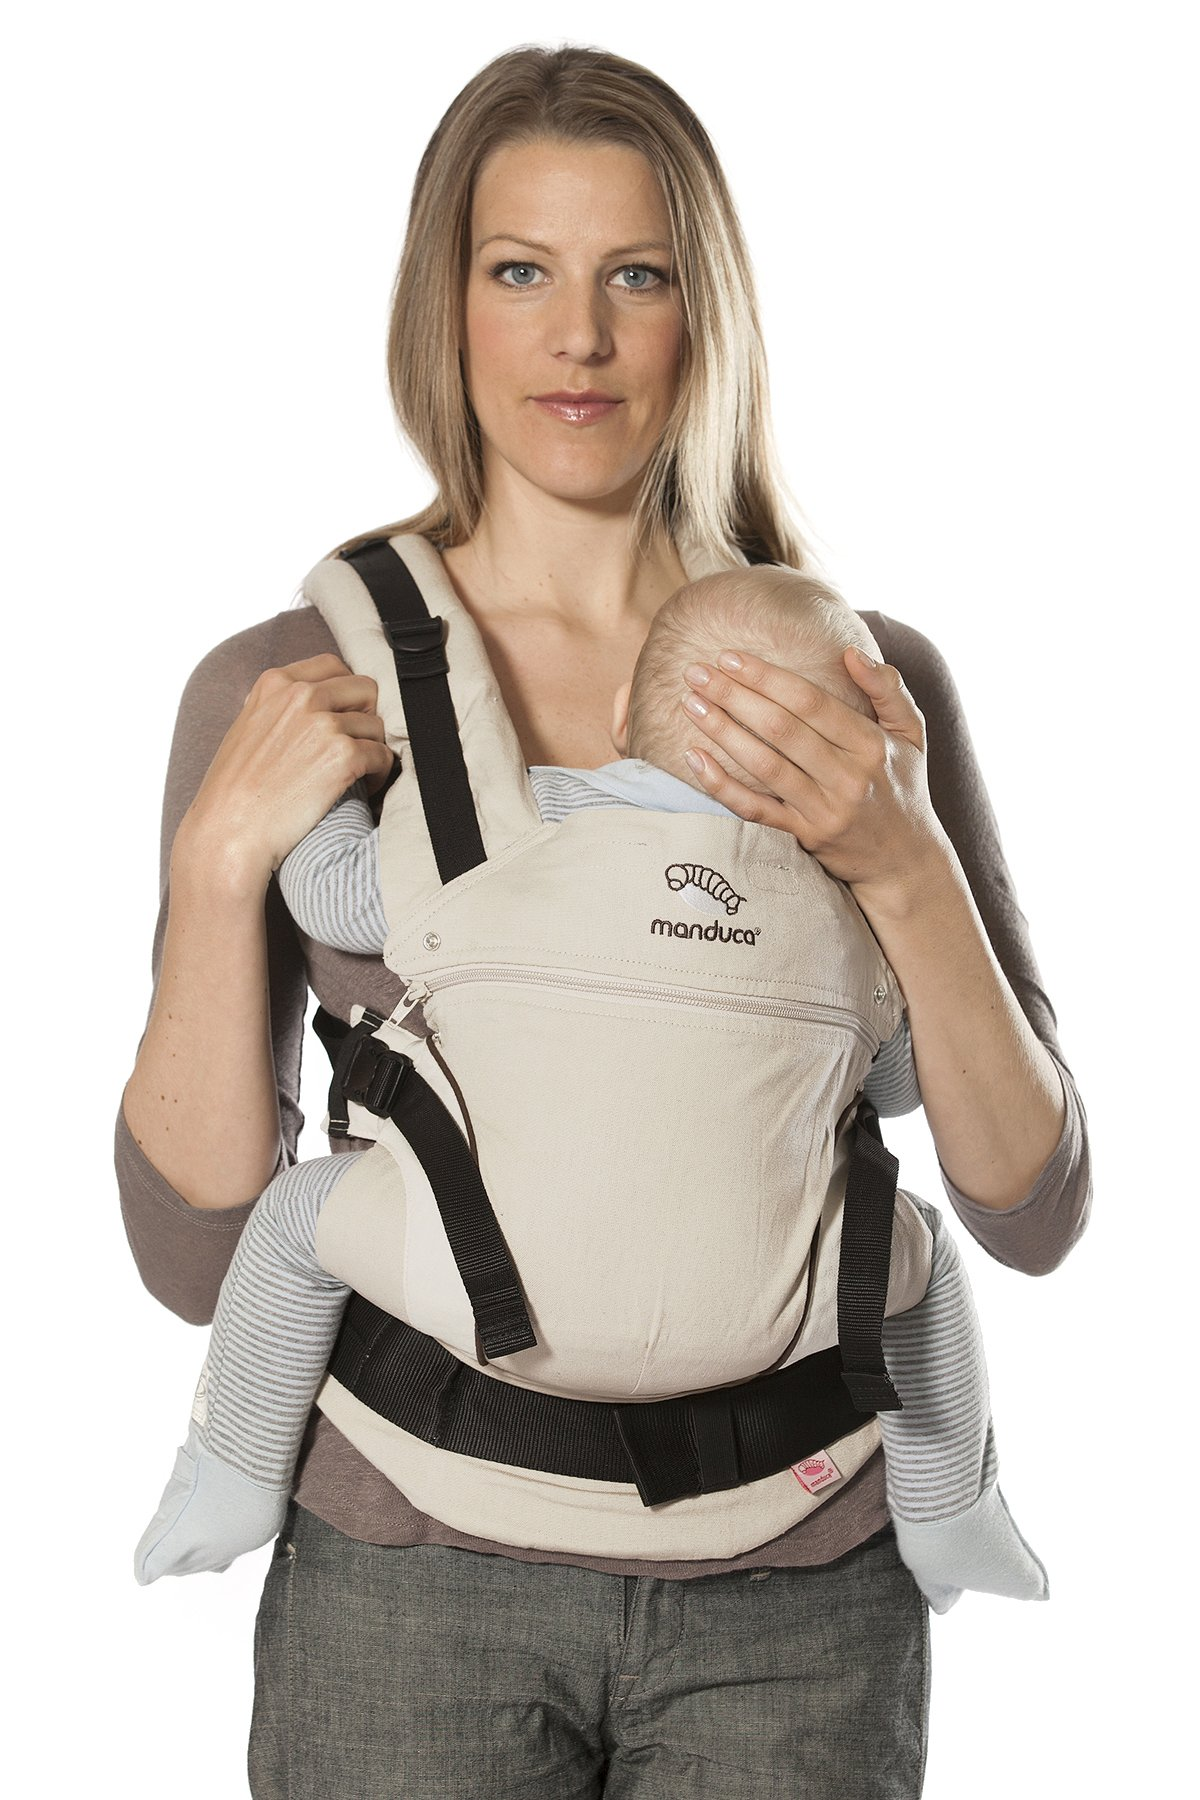 manduca First Baby Carrier > HempCotton Sand < Ergonomic Baby Carrier, Soft & Sturdy Canvas (Organic Cotton & Hemp), Front Carry, Hip Seat and Back Carry, from Newborn to Toddlers up to 20kg, Beige Manduca New features: Improved three-point-buckle (secure & easy to open); extra soft canvas made of 45% hemp and 55% organic cotton (outside), 100% organic cotton lining (inside) Already integrated in every baby carrier: infant pouch (newborn insert), stowable headrest & sun protection for your baby, patented back extension (grows with your child); Optional accessories for newborns: Size-It (seat reducer) and Zip-In Ellipse Ergonomic design for men & women: Soft padded shoulder straps (multiple adjustable) & anatomically shaped stable hipbelt (fits hips from 64cm to 140cm) ensure balanced weight distribution. No waist-belt extension needed 10